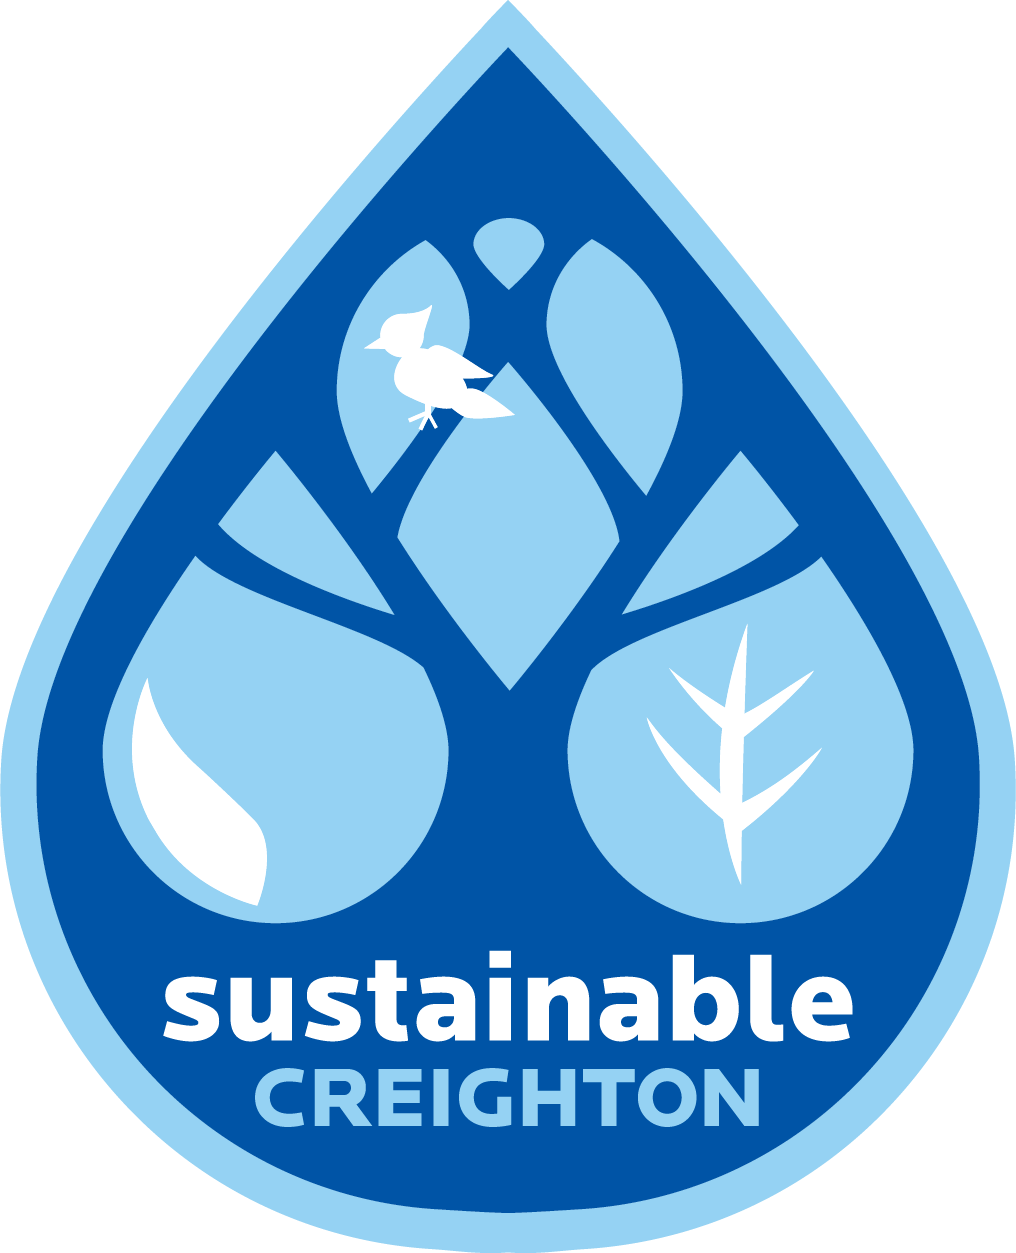 Small sustainable creighton logo